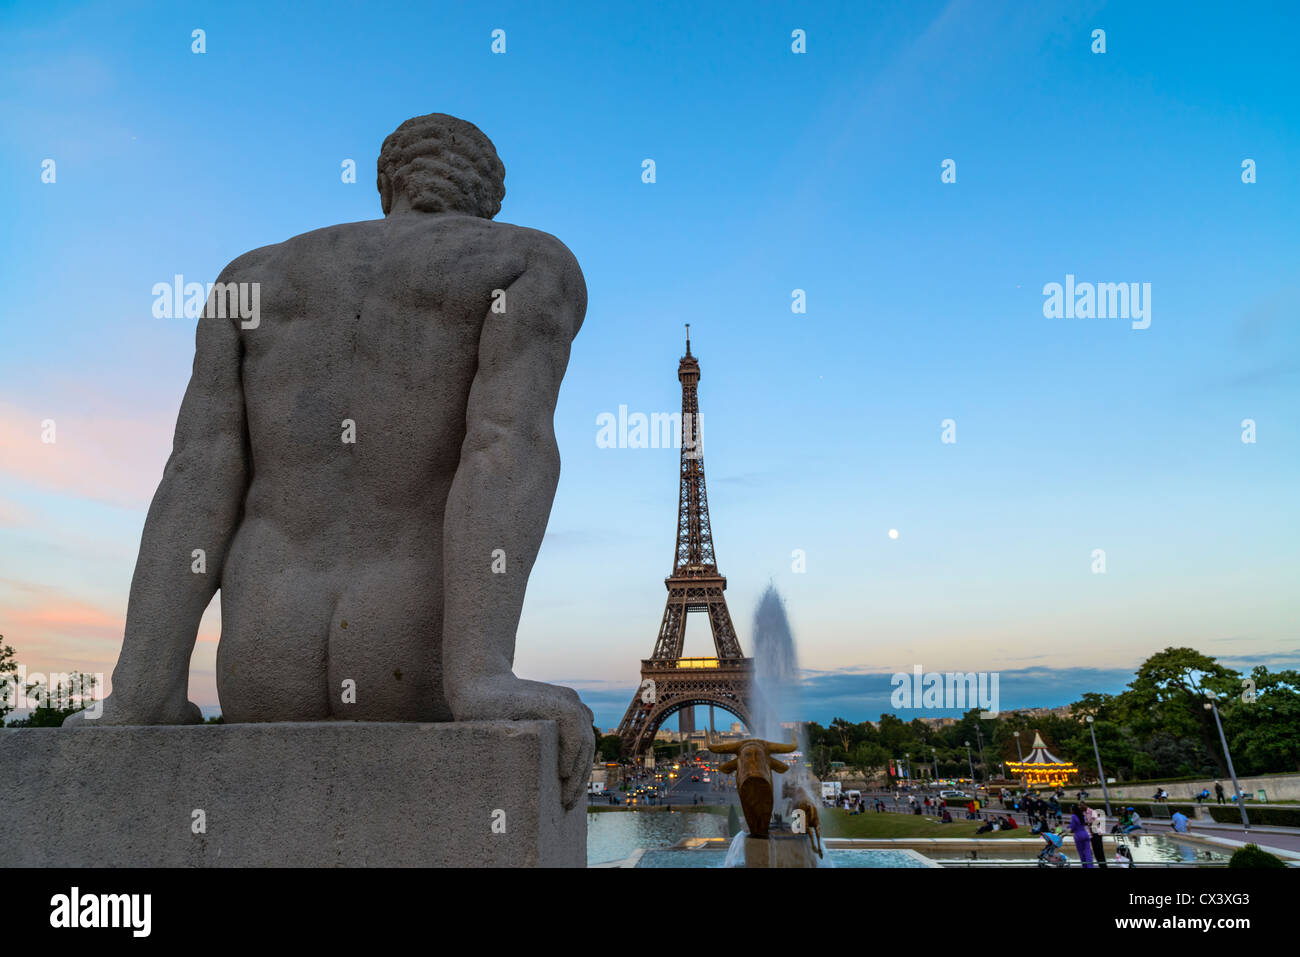 Male statue with the Eiffel Tower, Trocadero, Paris, France - Stock Image